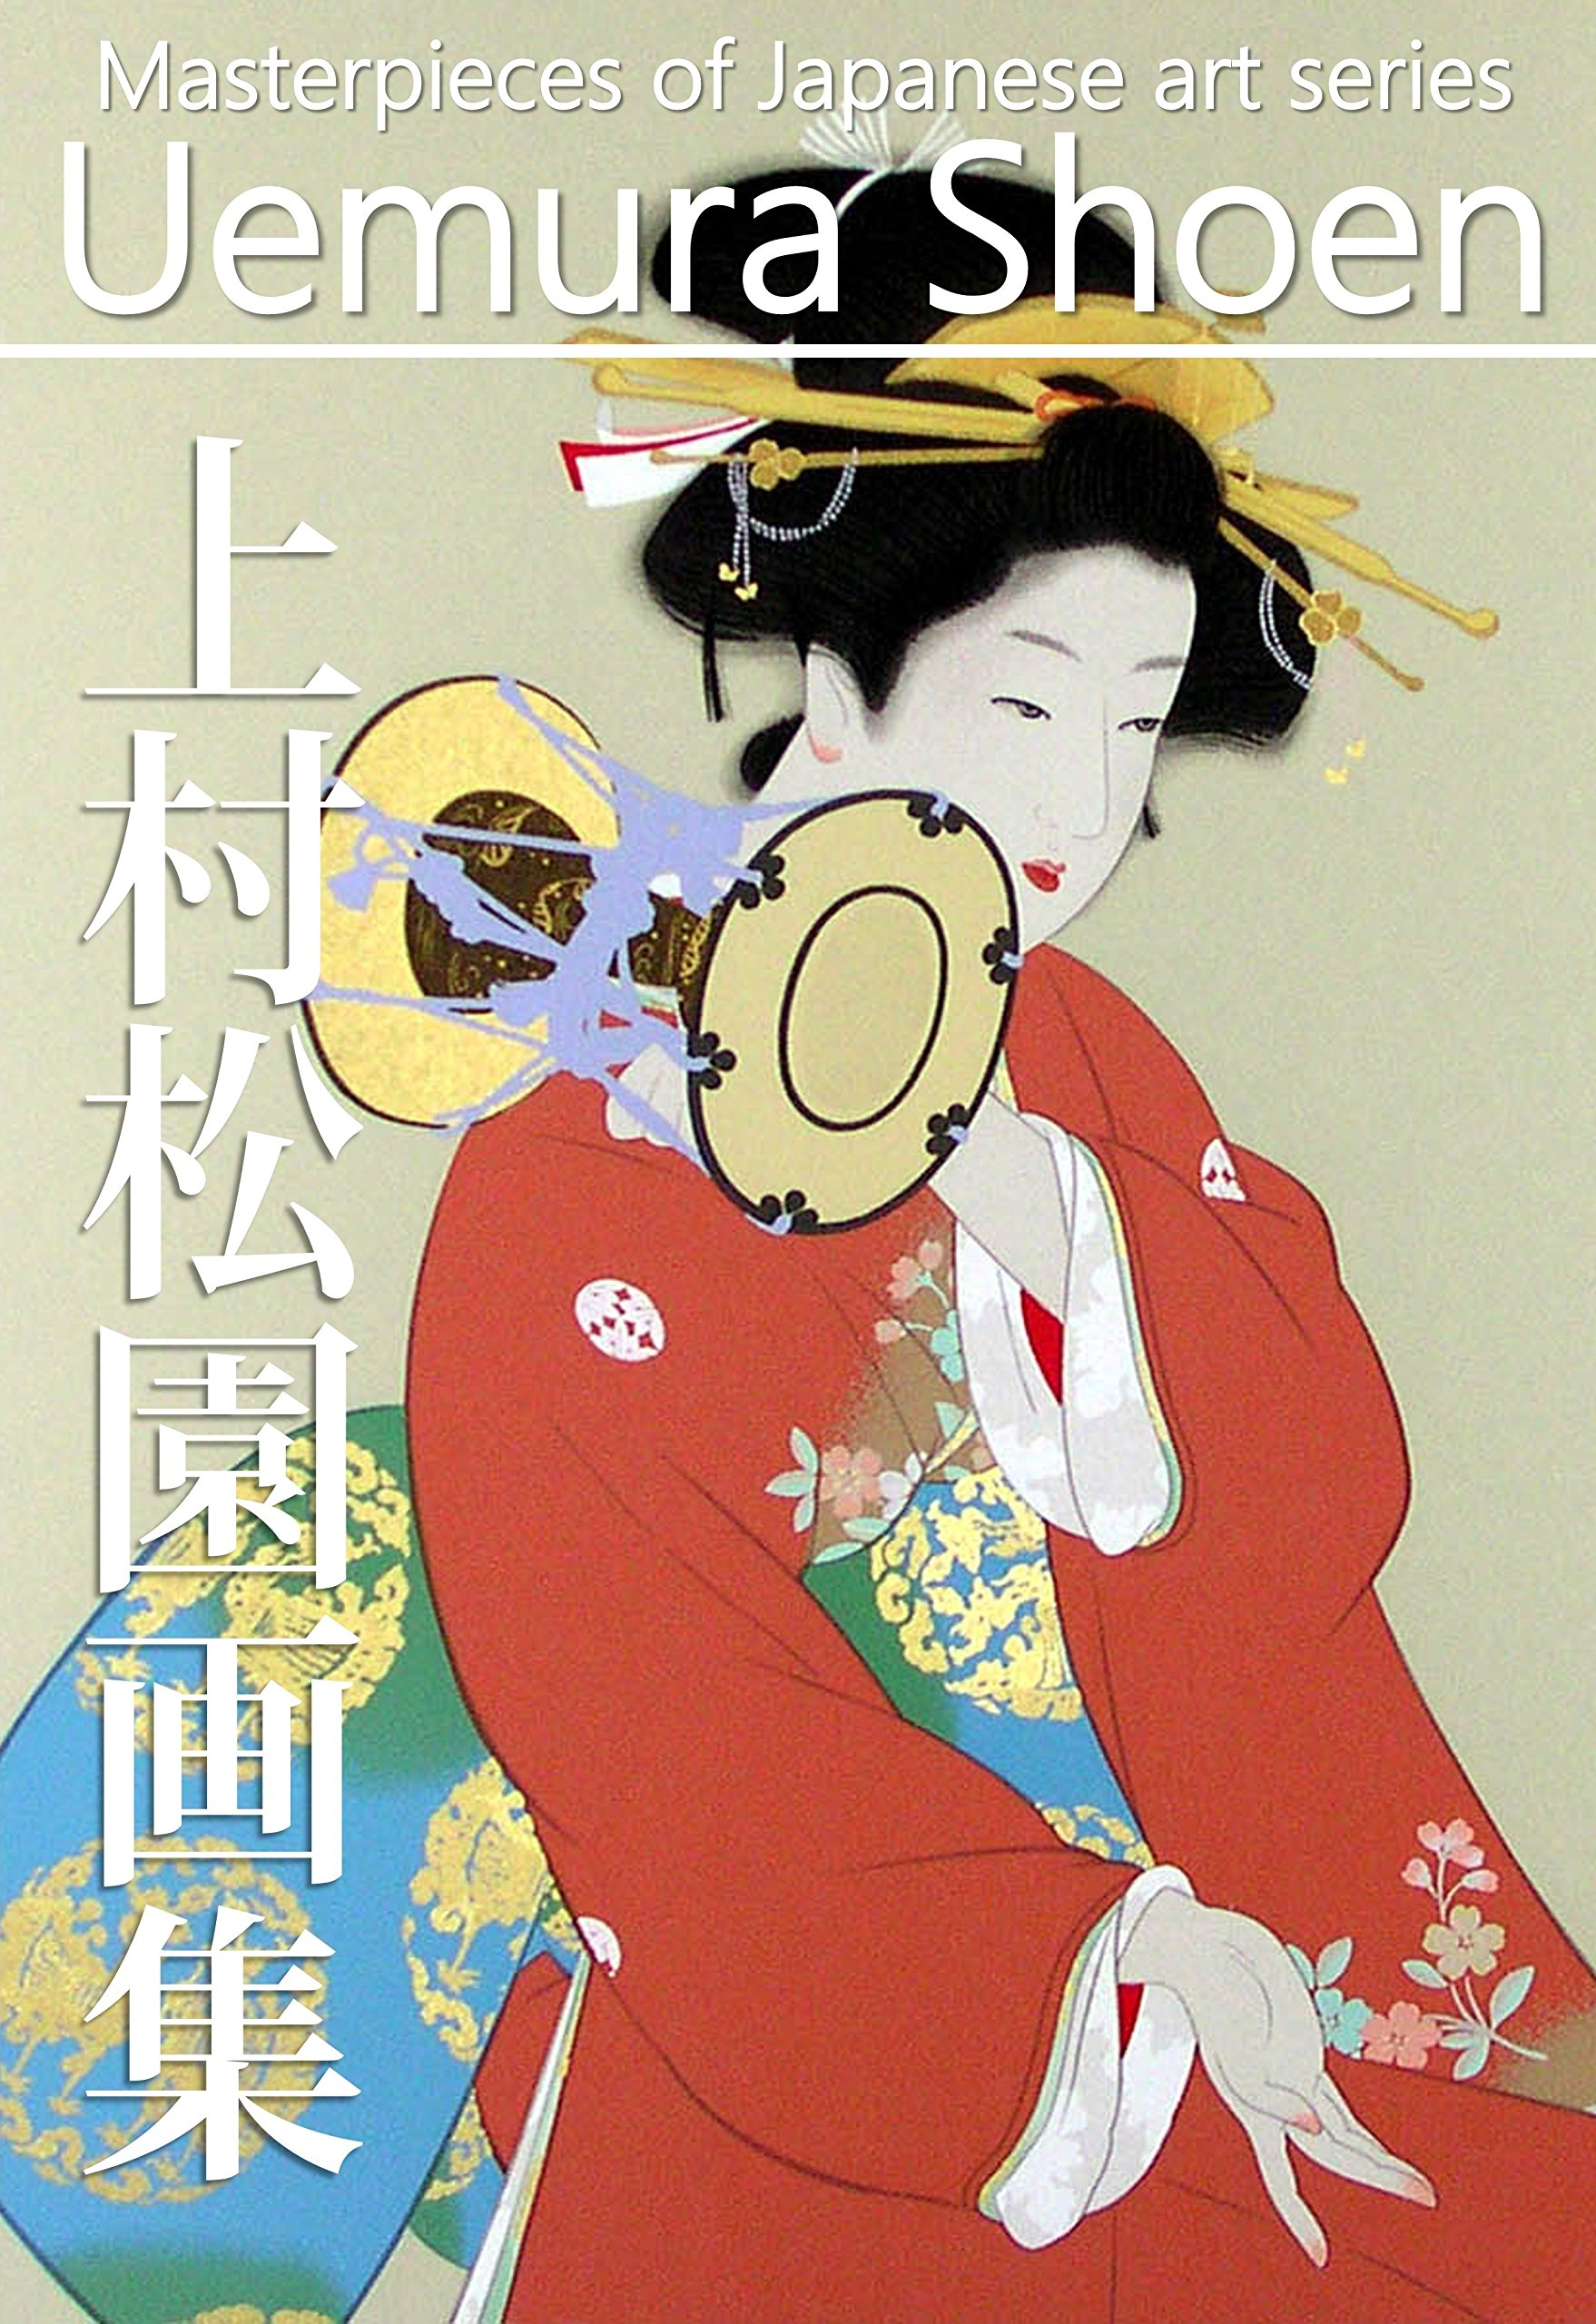 Nihonga collection of Uemura Shoen - in English and Japanese/HD quality Masterpieces of Japanese Art Series (Japanese Edition)